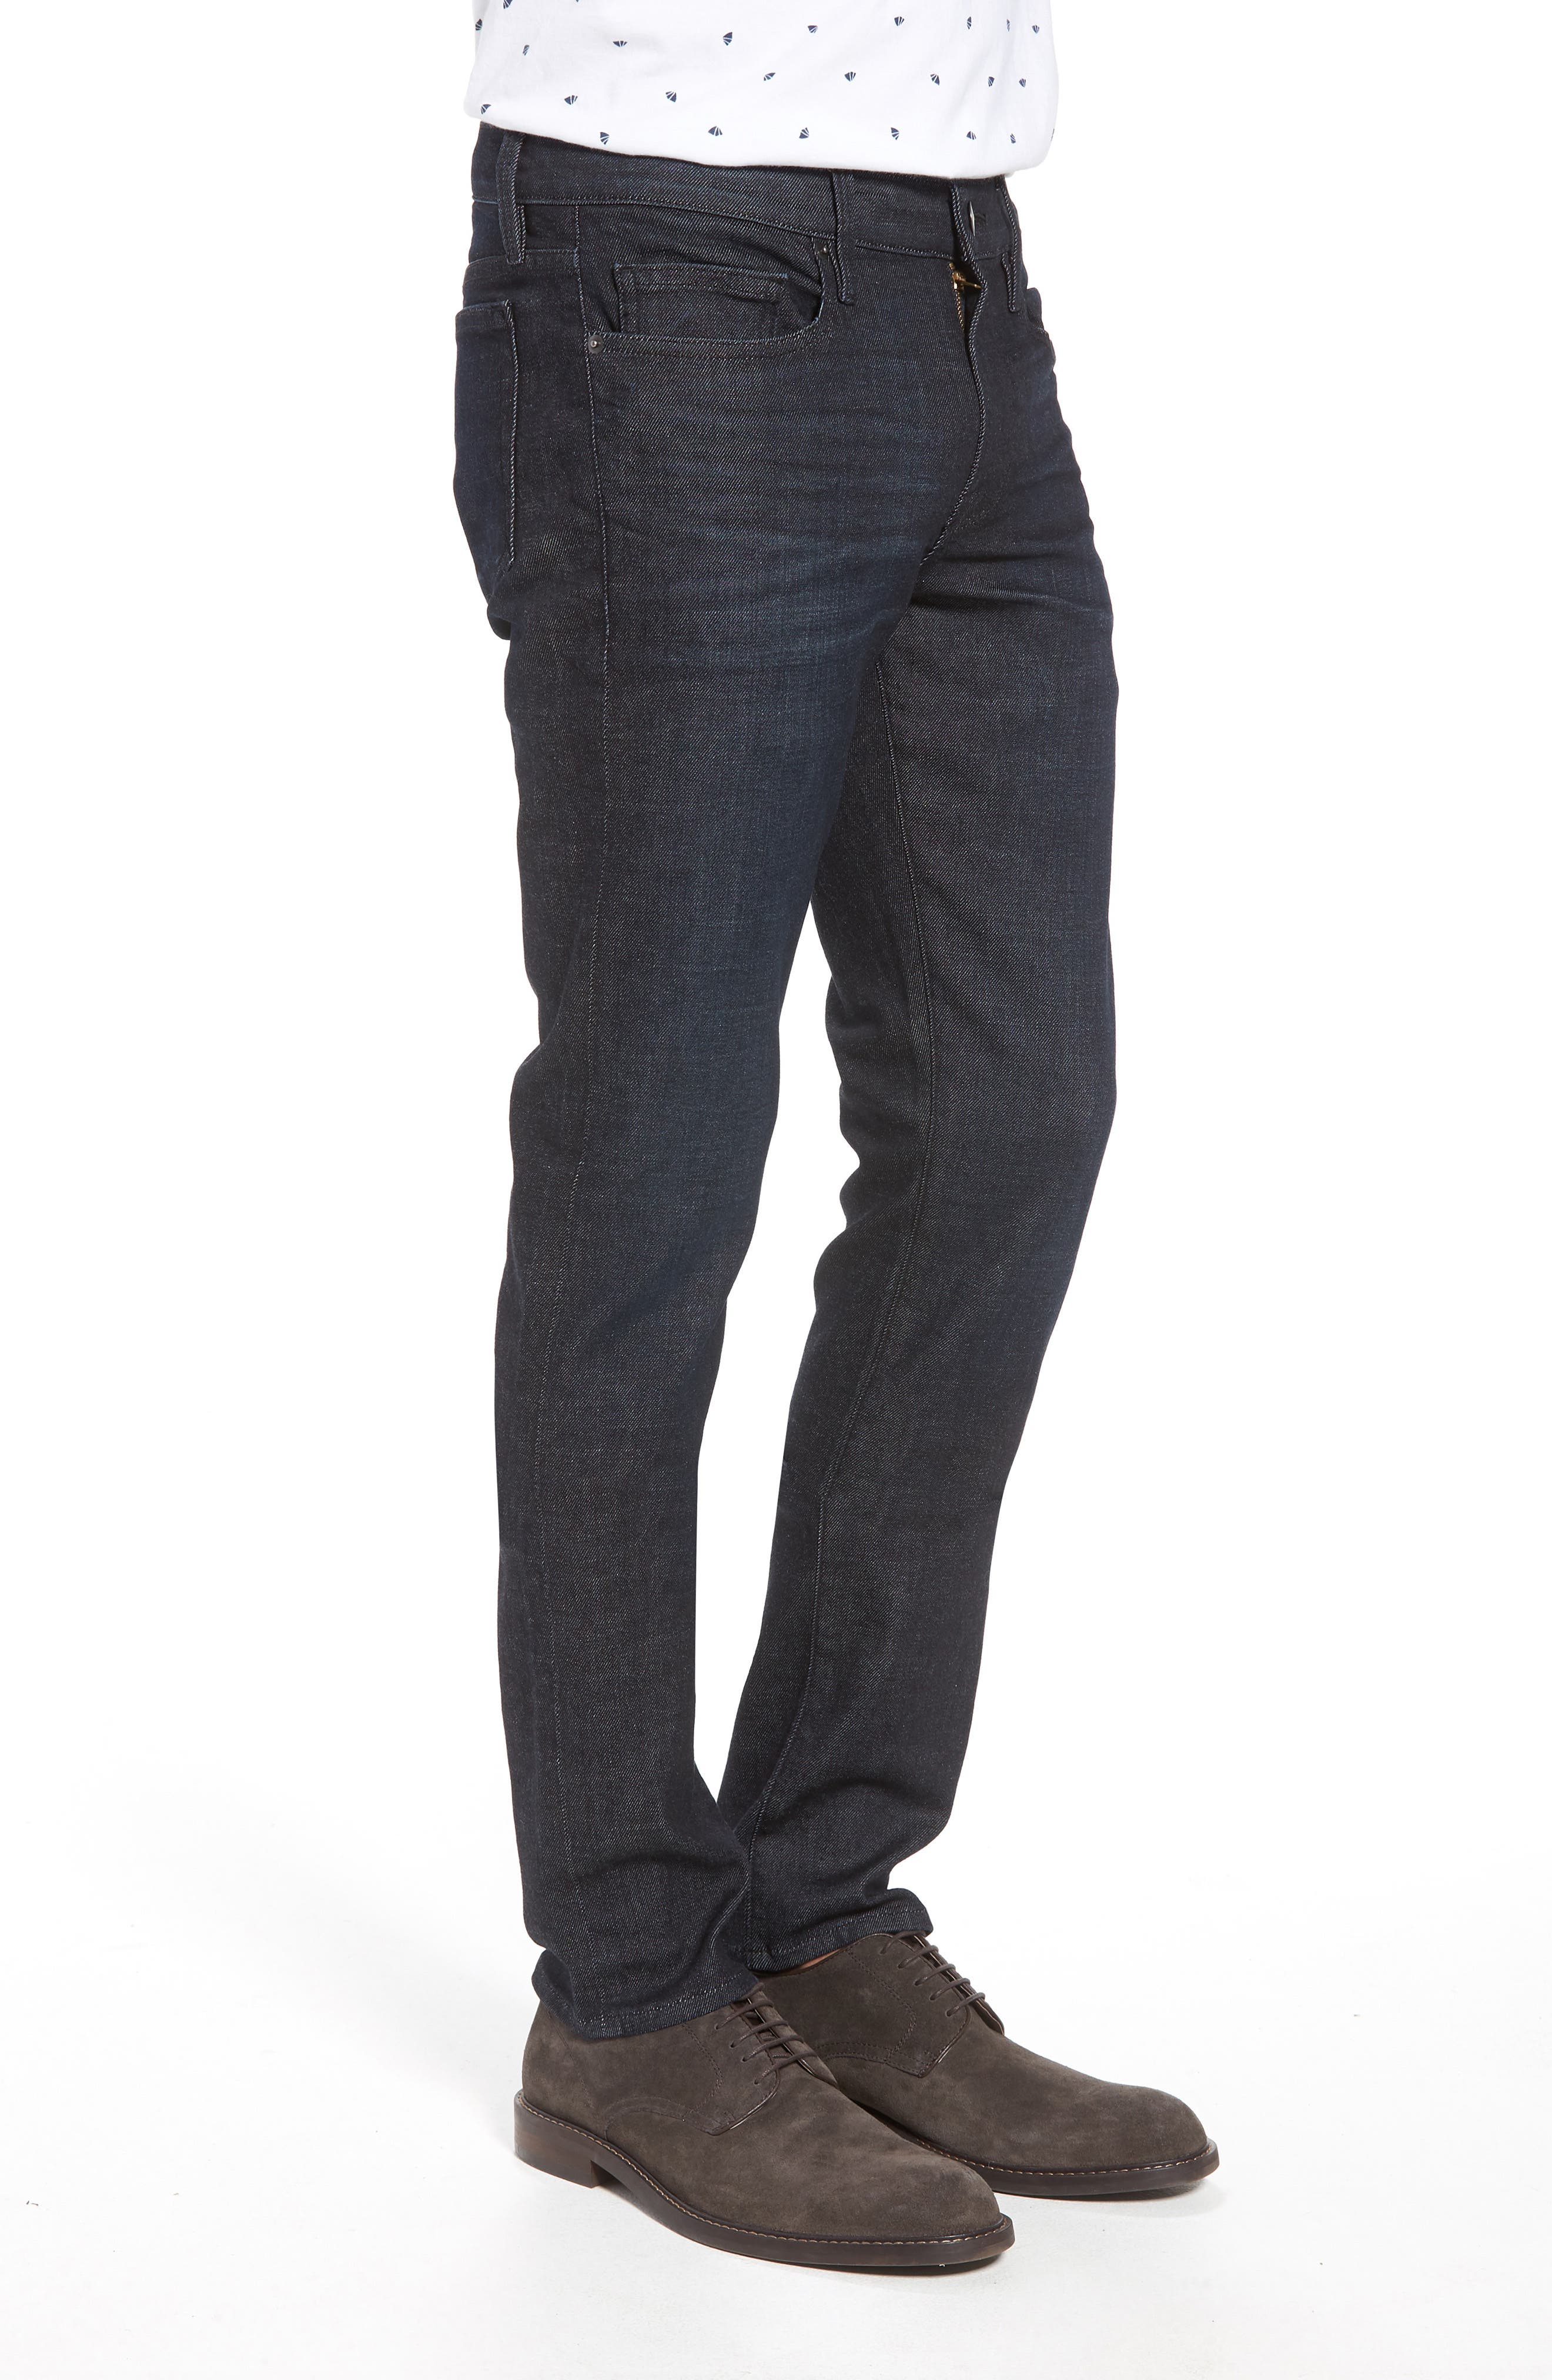 L'Homme Skinny Jeans,                             Alternate thumbnail 3, color,                             MANHATTAN